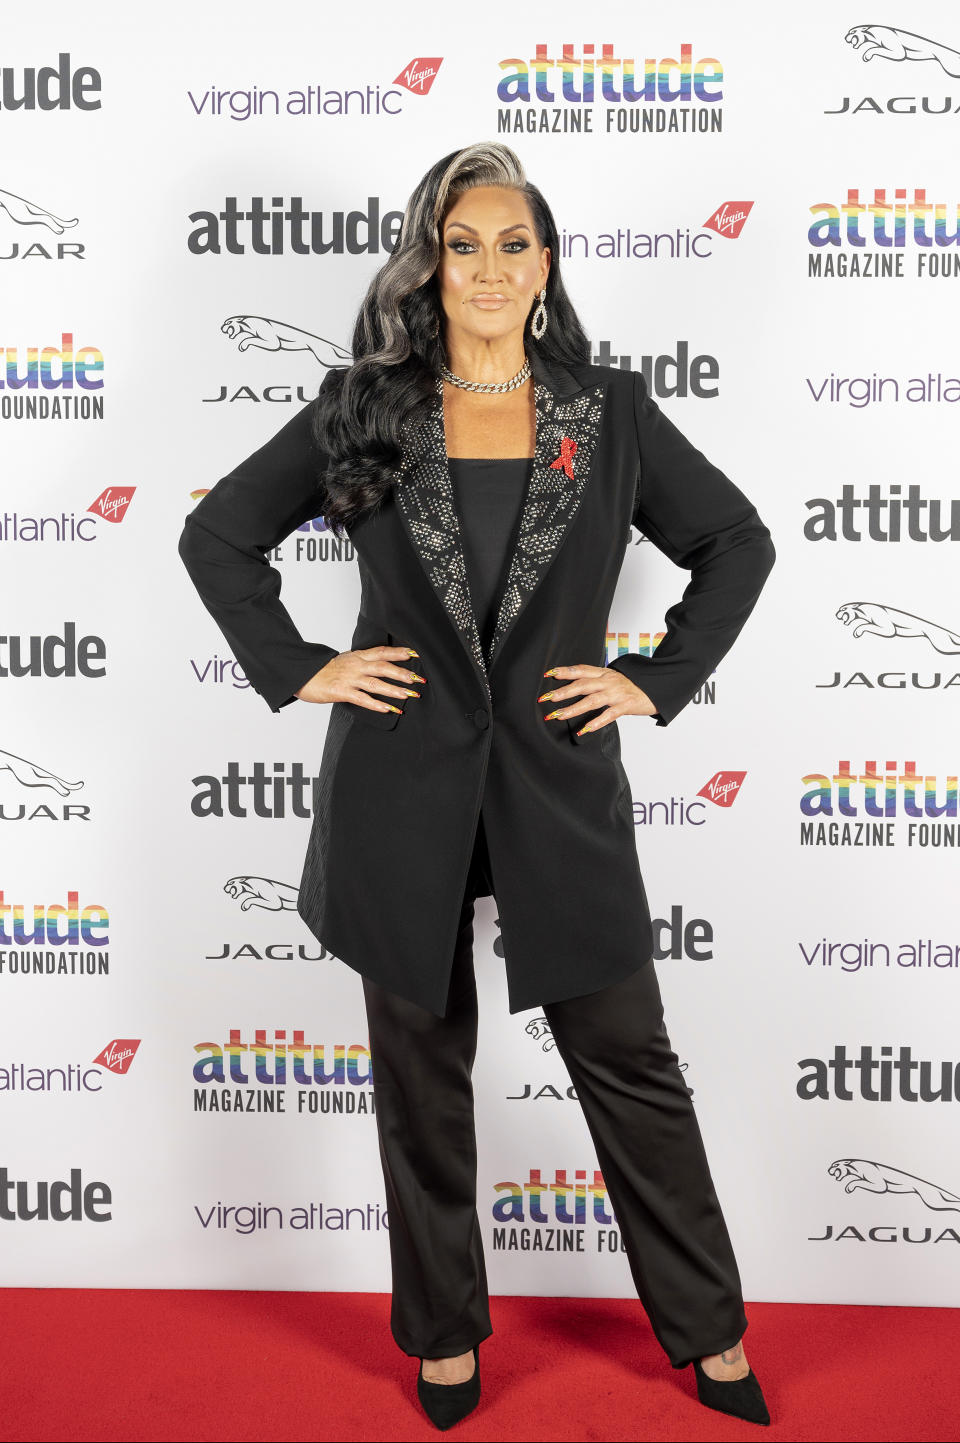 Michelle Visage poses on the red carpet during the Virgin Atlantic Attitude Awards Powered By Jaguar broadcast on December 01, 2020 in London, England. (Photo by Attitude Magazine/Attitude Magazine via Getty Images)